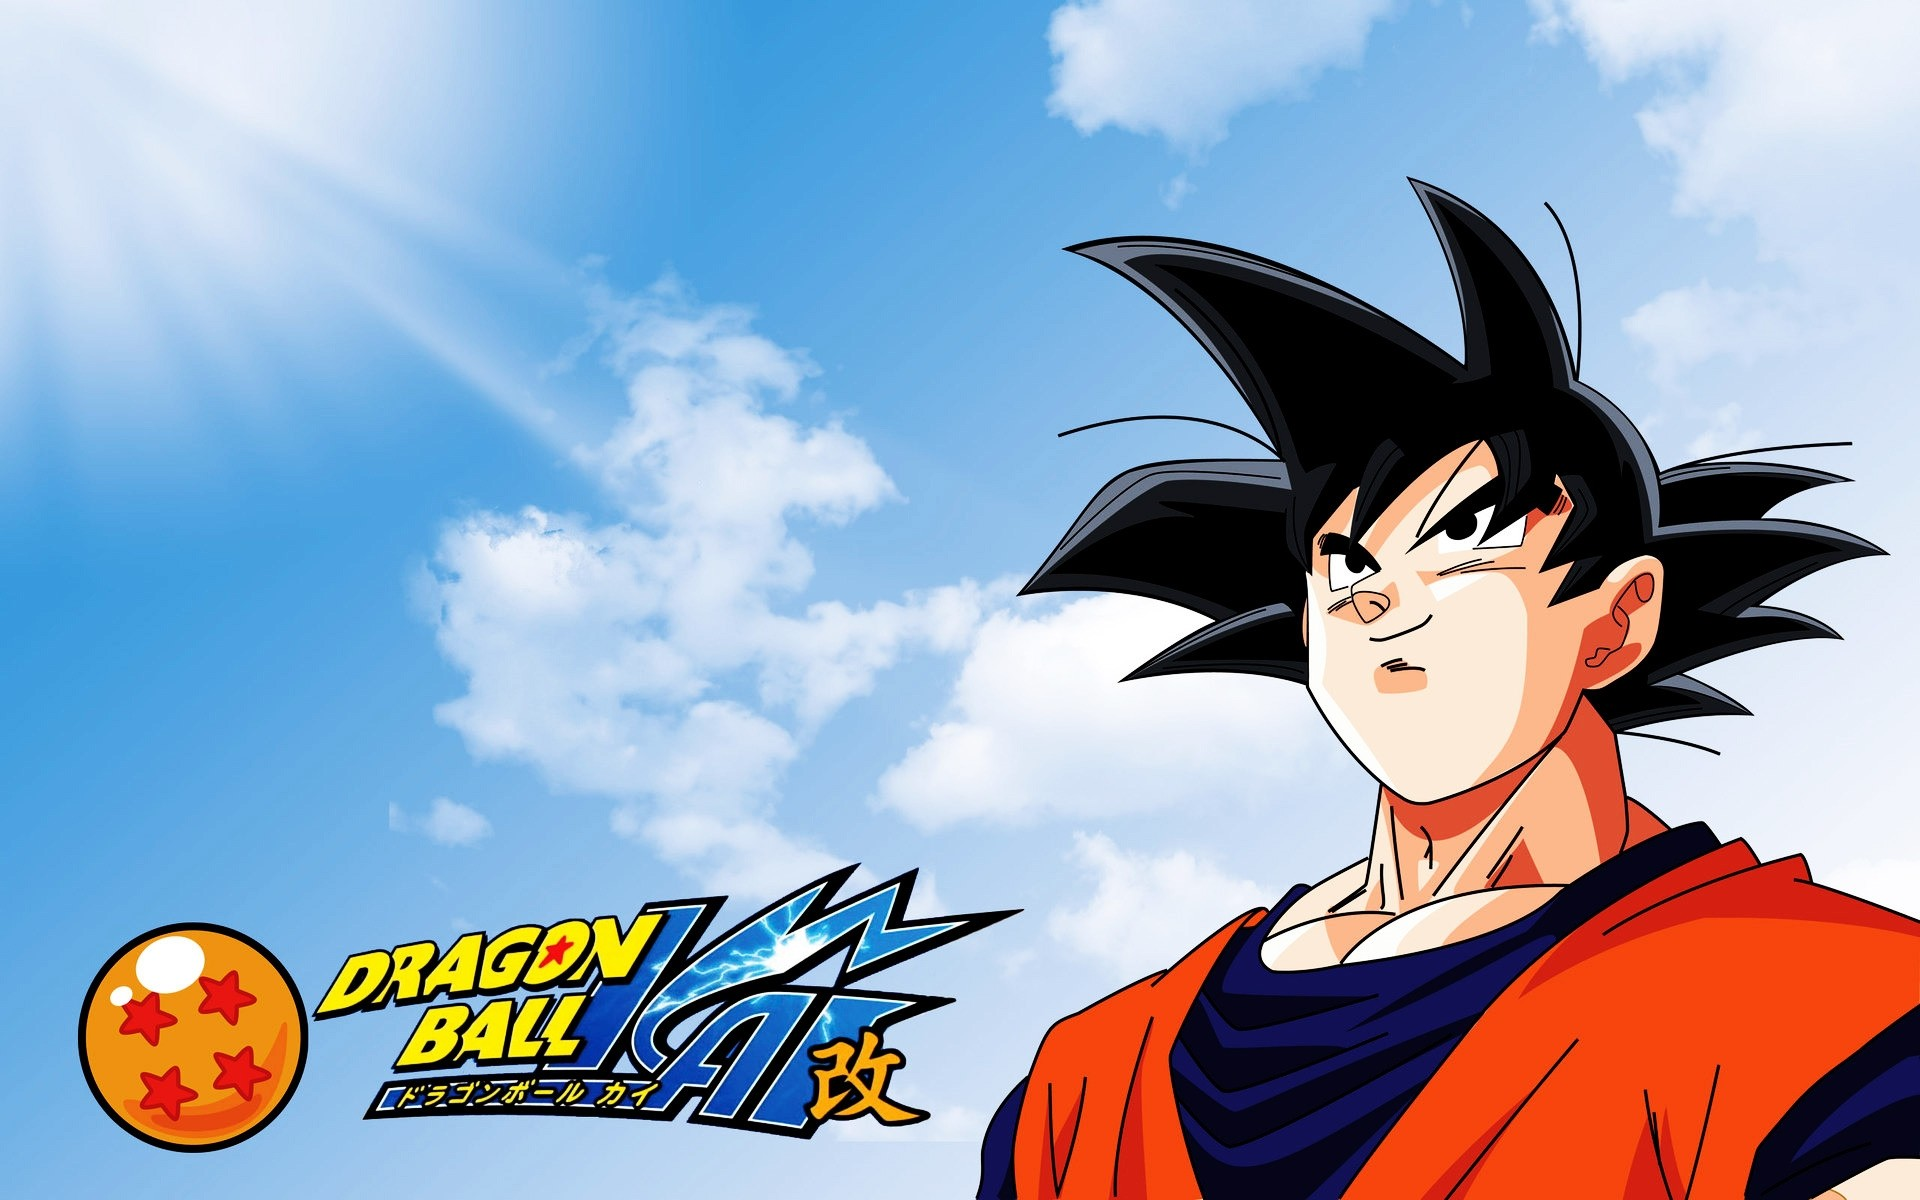 Dragon Ball манга